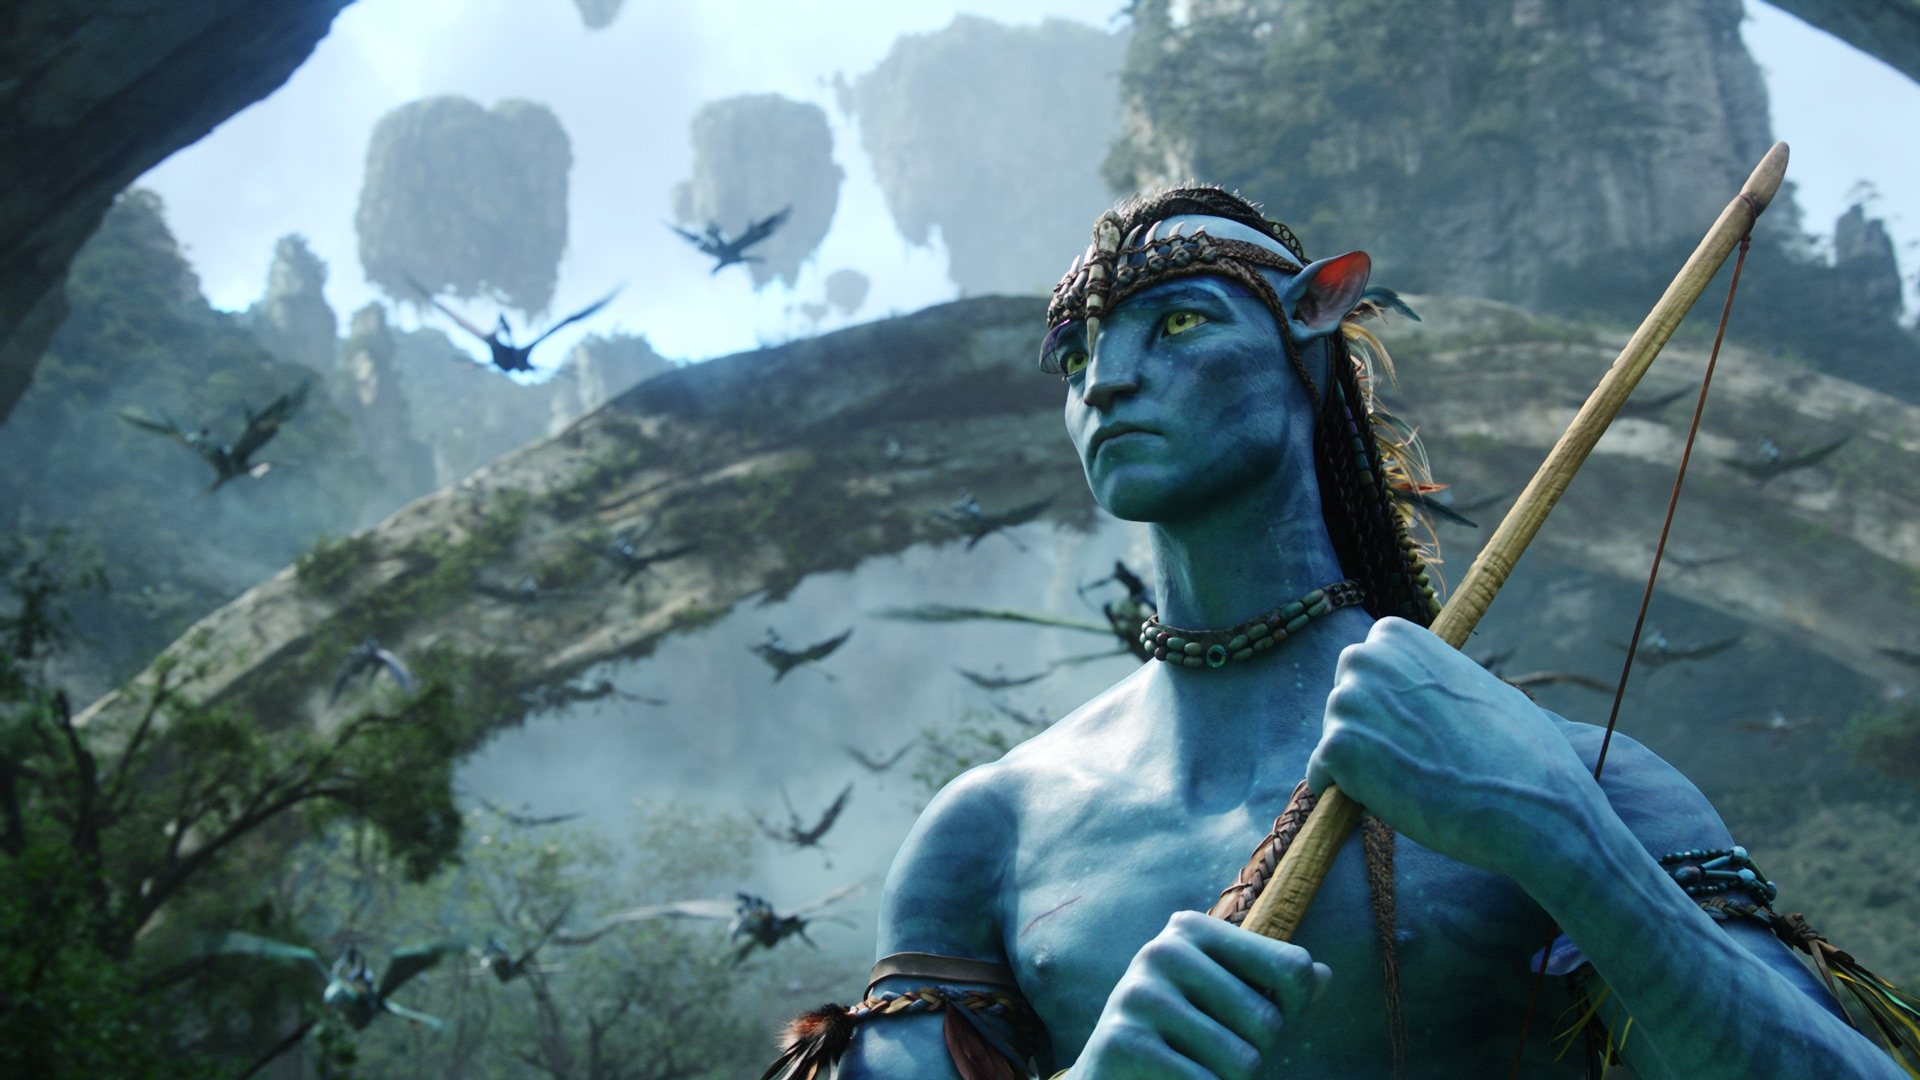 #29) Avatar - (2009 - dir. James Cameron)